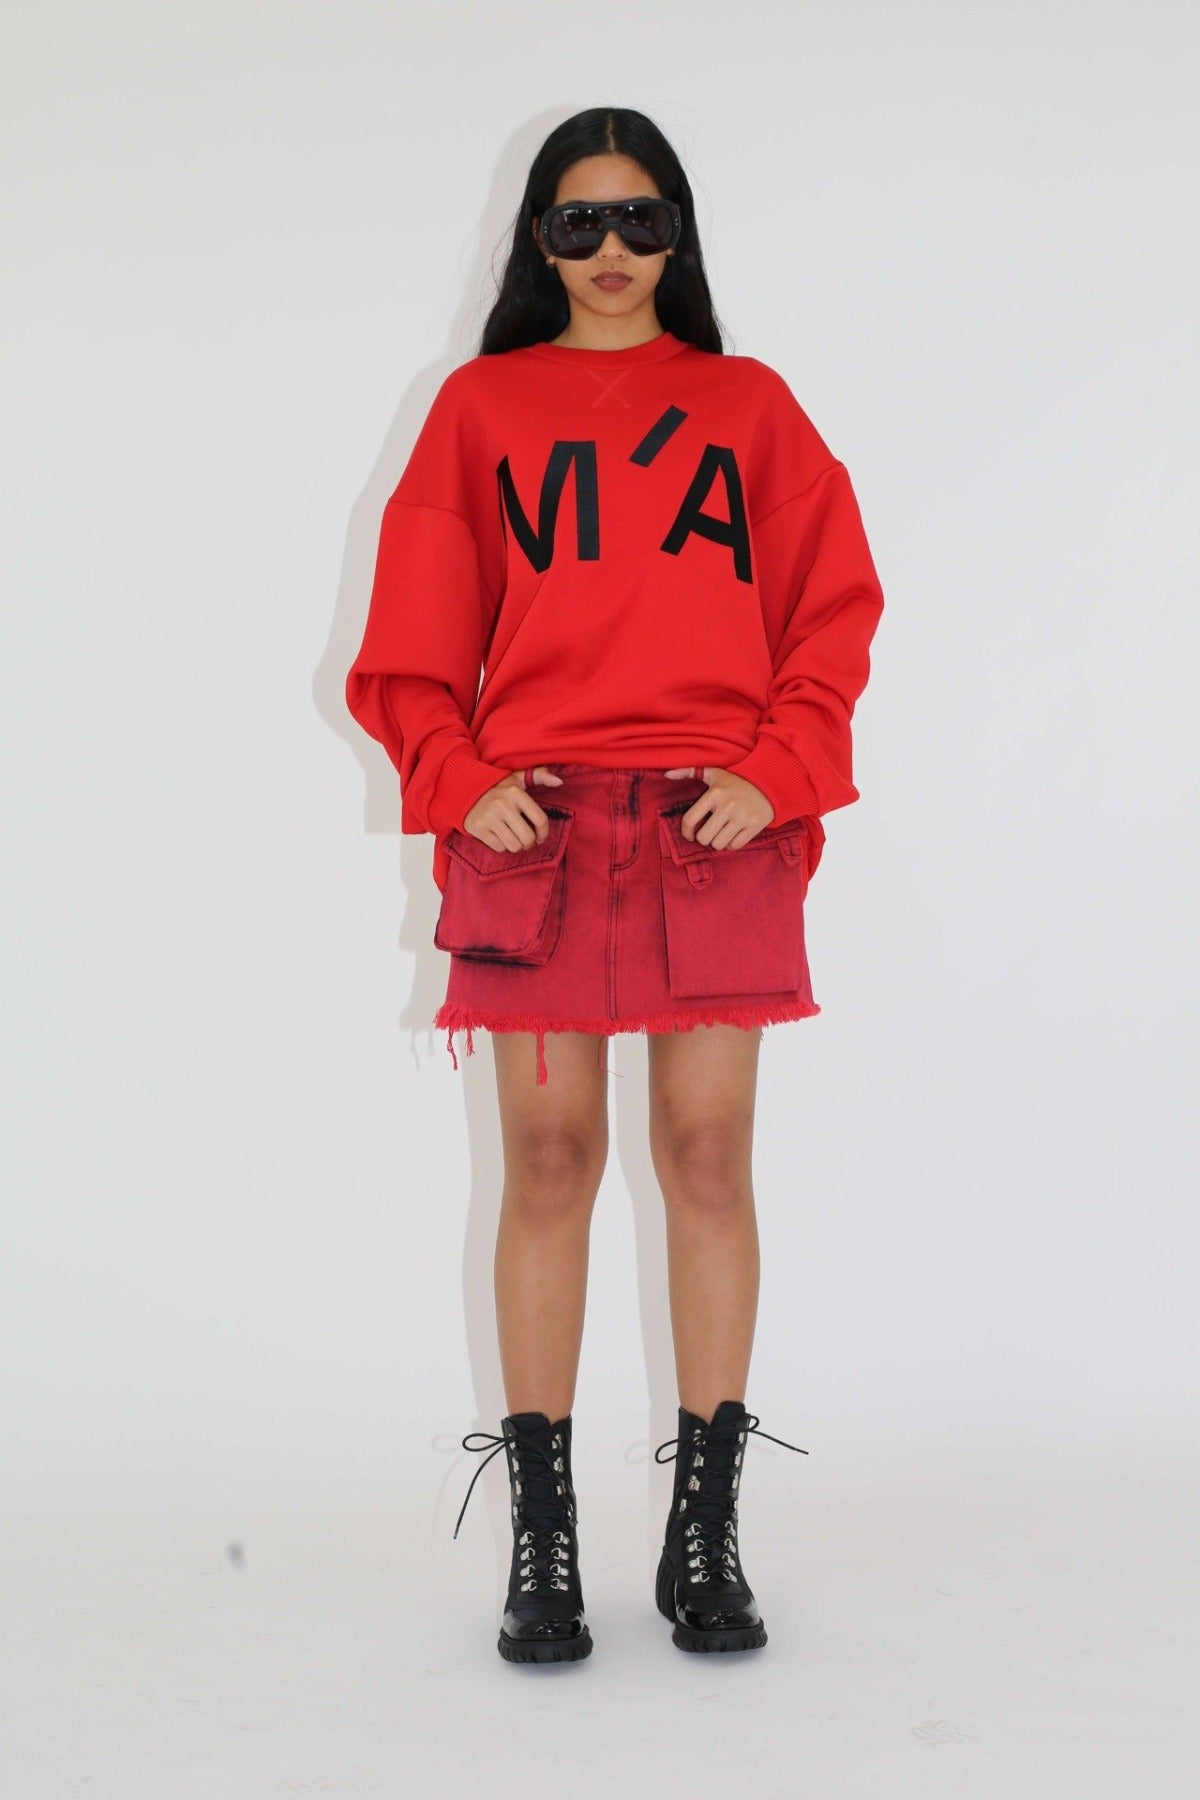 PATCH POCKET MINI SKIRT IN RED marques almeida